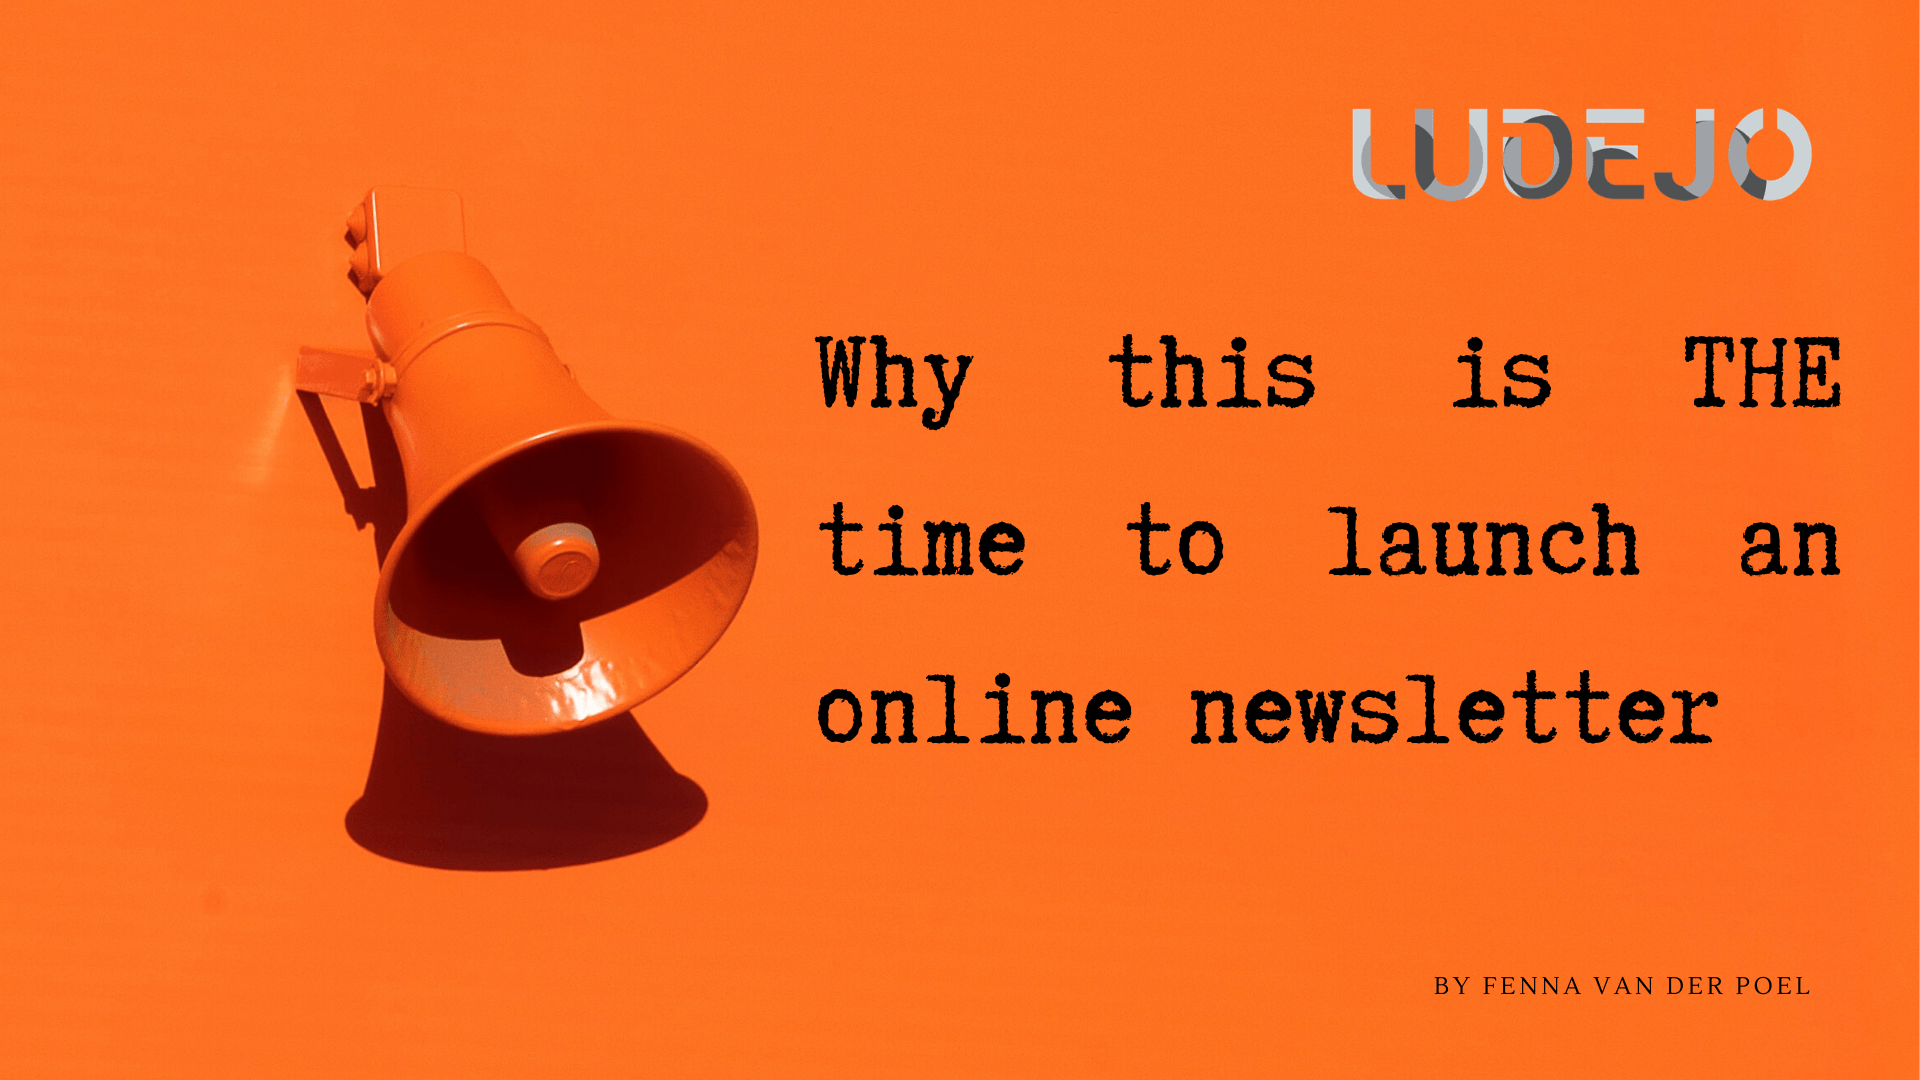 Why this is the time to launch an online newsletter